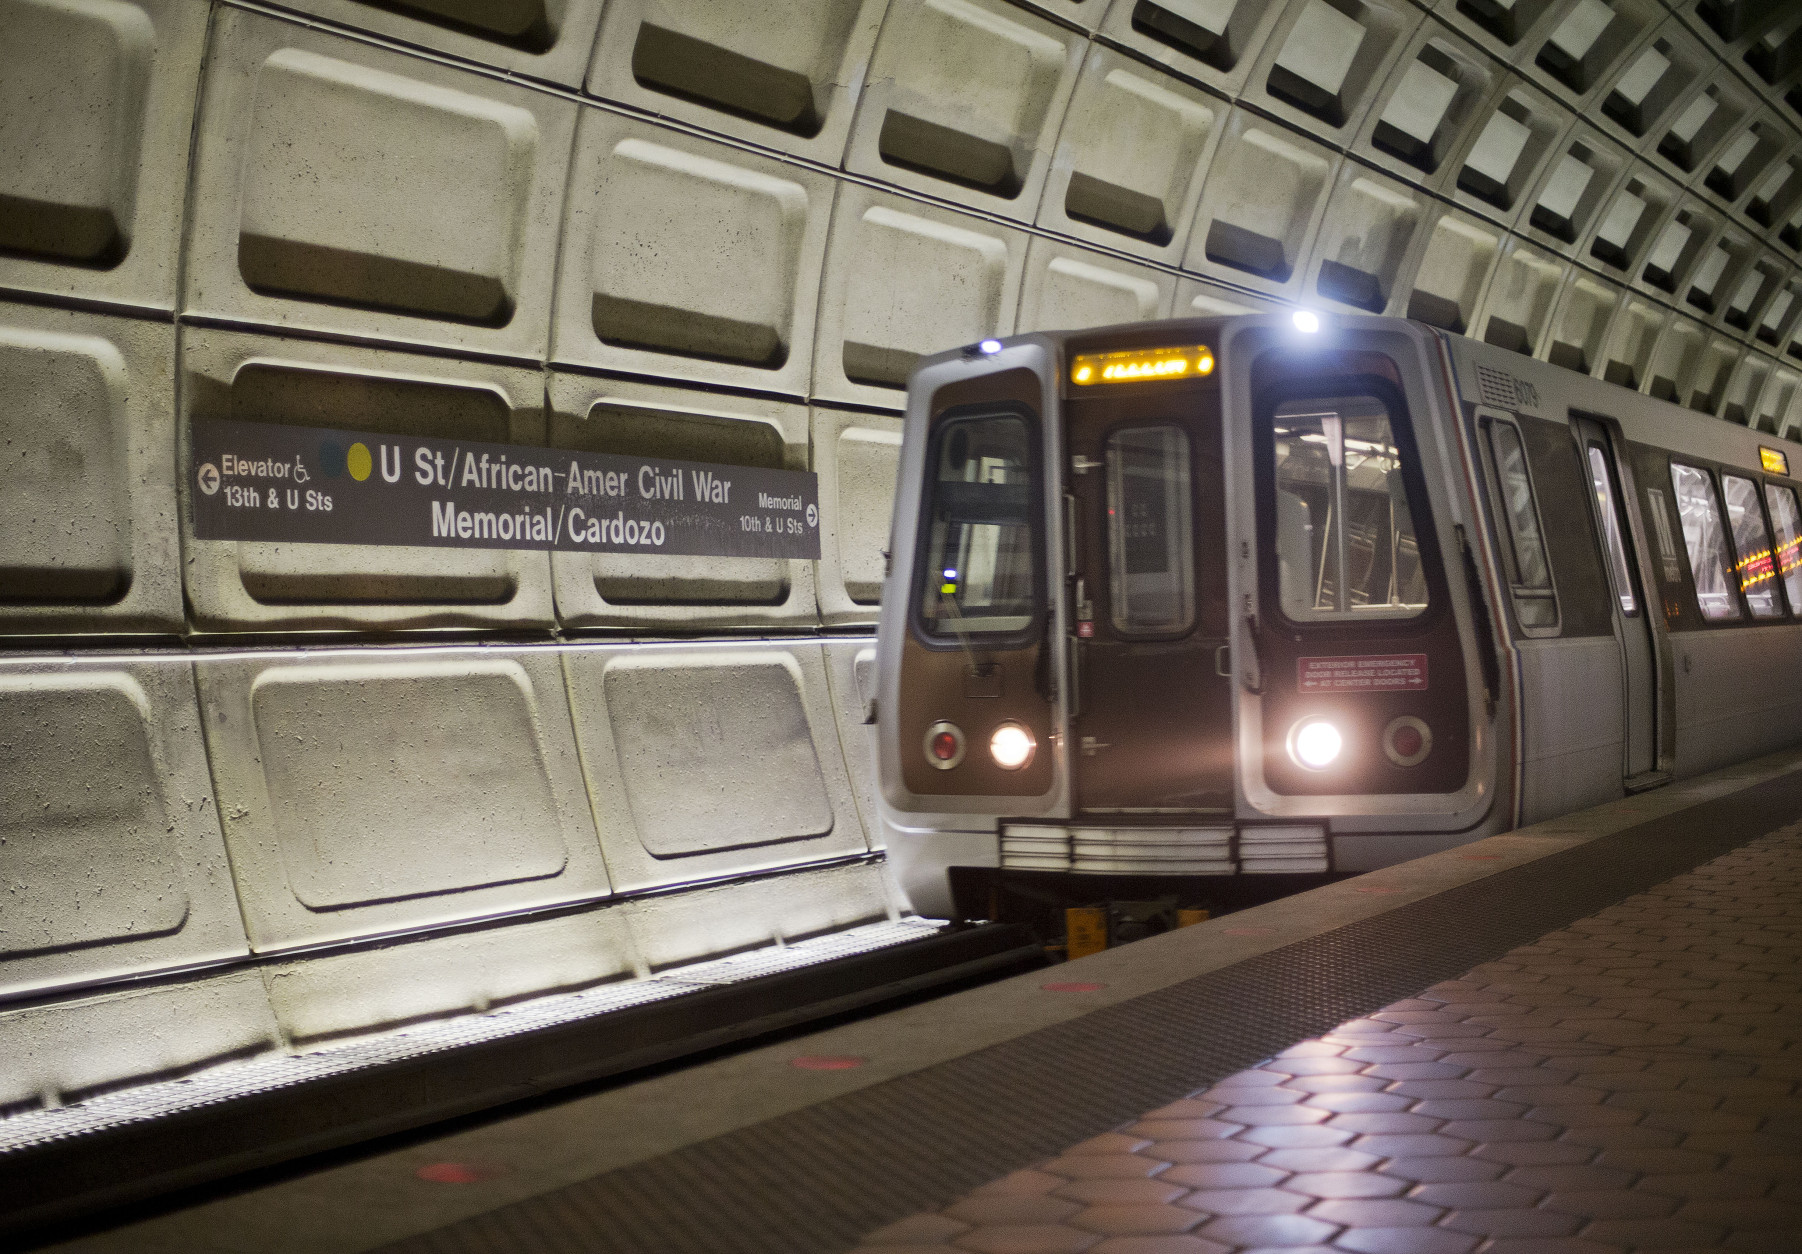 New WMATA general manager promises better communication during delays